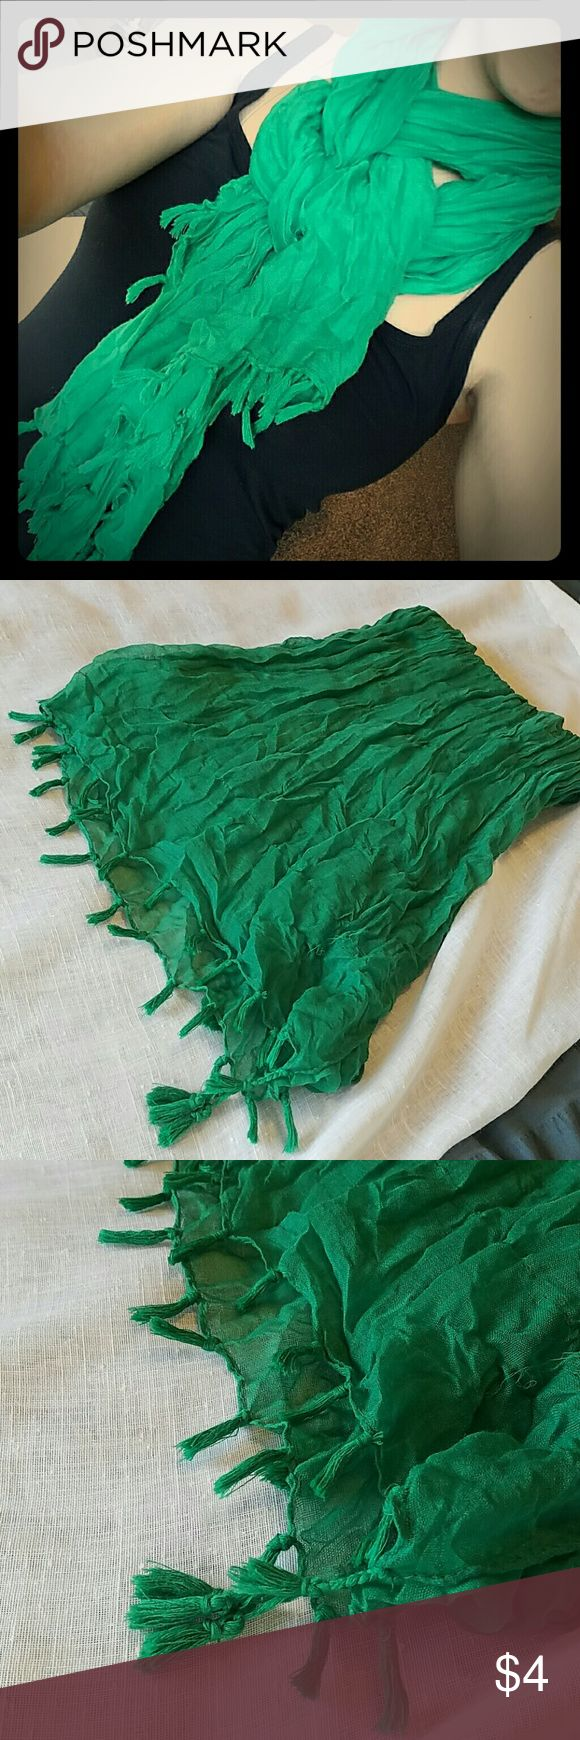 Kelly Green Lightweight Crinkle Scarf Soft lightweight crinkle like scarf in a great green. Worn on St Paddys! Tassle bottoms are in perfect condition. Bundle and Save 20%! Or add to a bundle and offer to possibly receive for free! Clearing out my collection! Accessories Scarves & Wraps